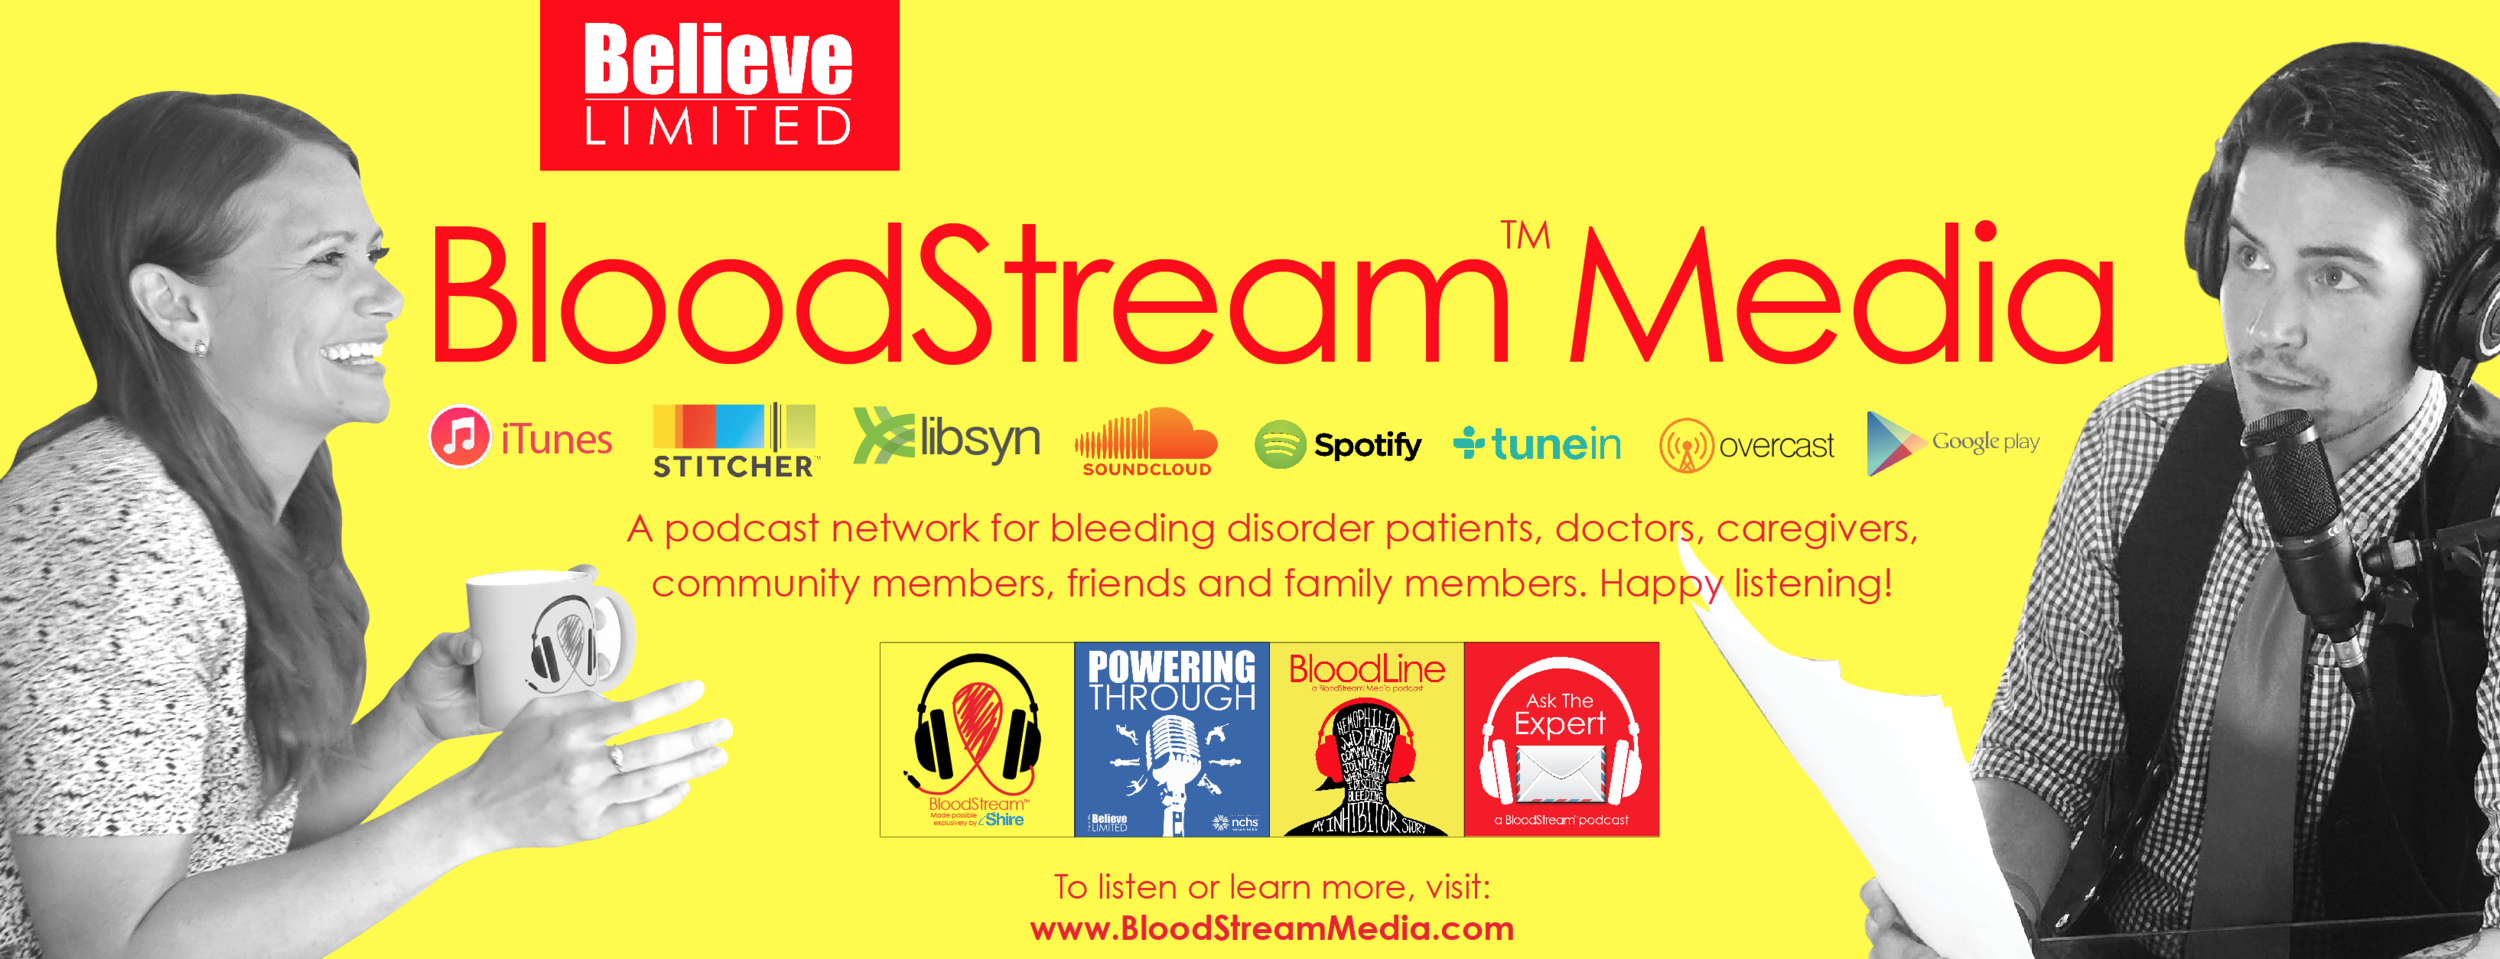 UPDATE BloodStream Media - FB Cover Image - FINAL.png